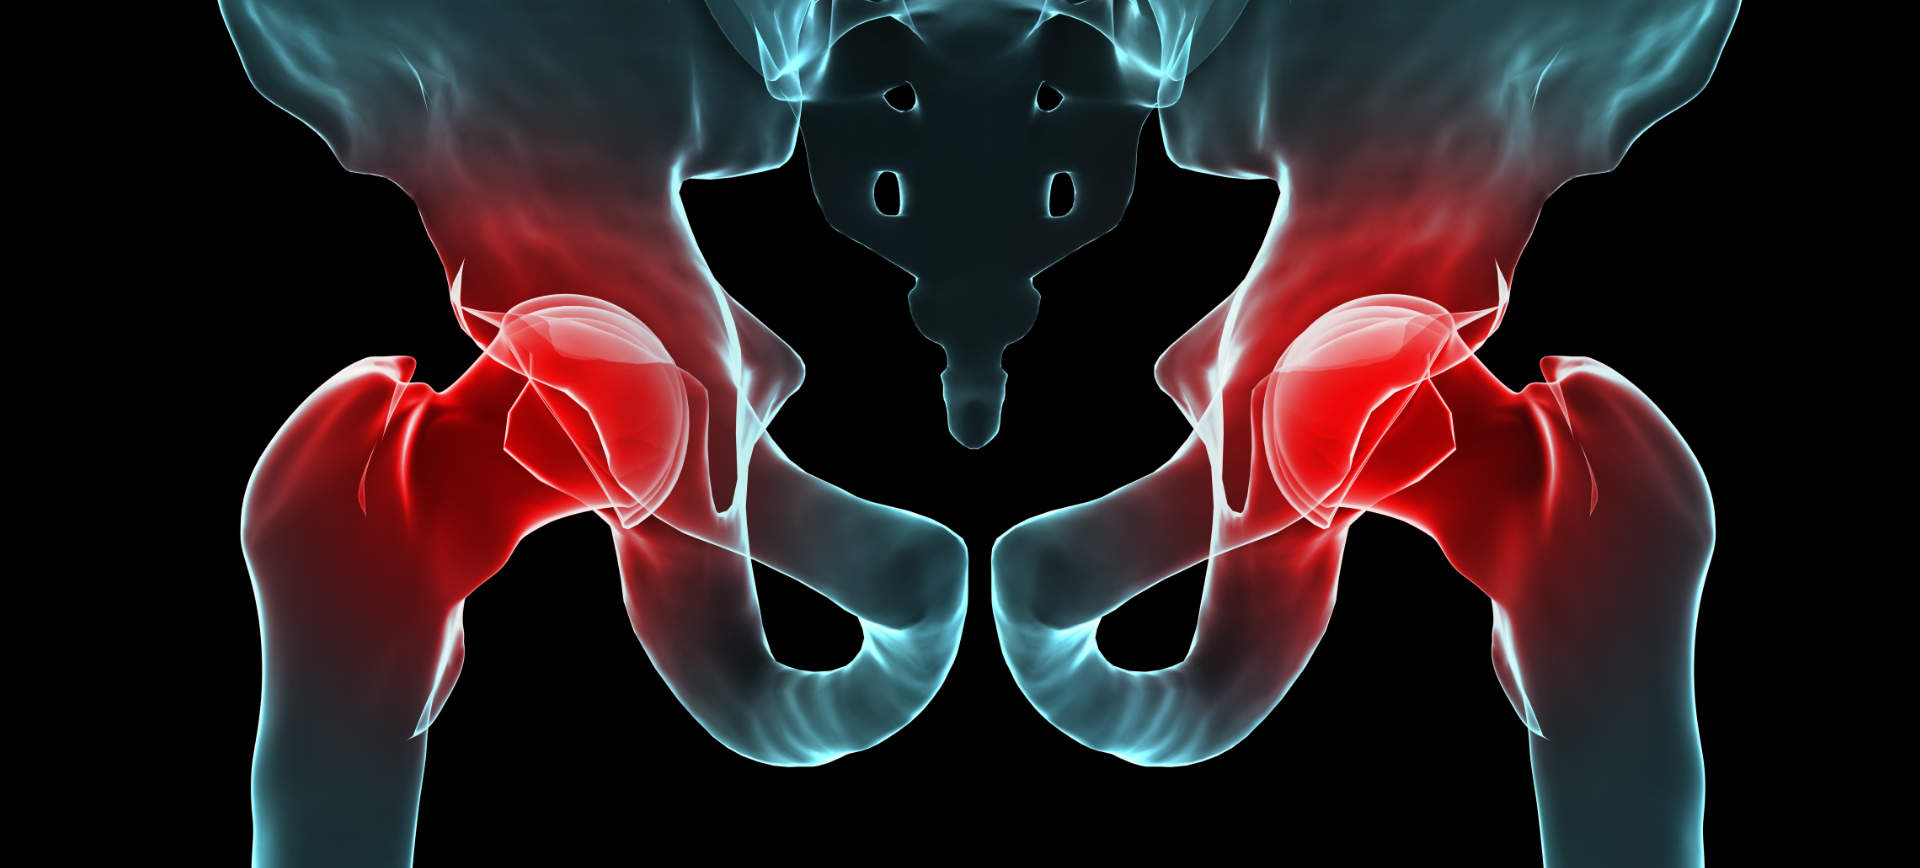 Hip Pain and Injuries Treatment in Morgan Hill